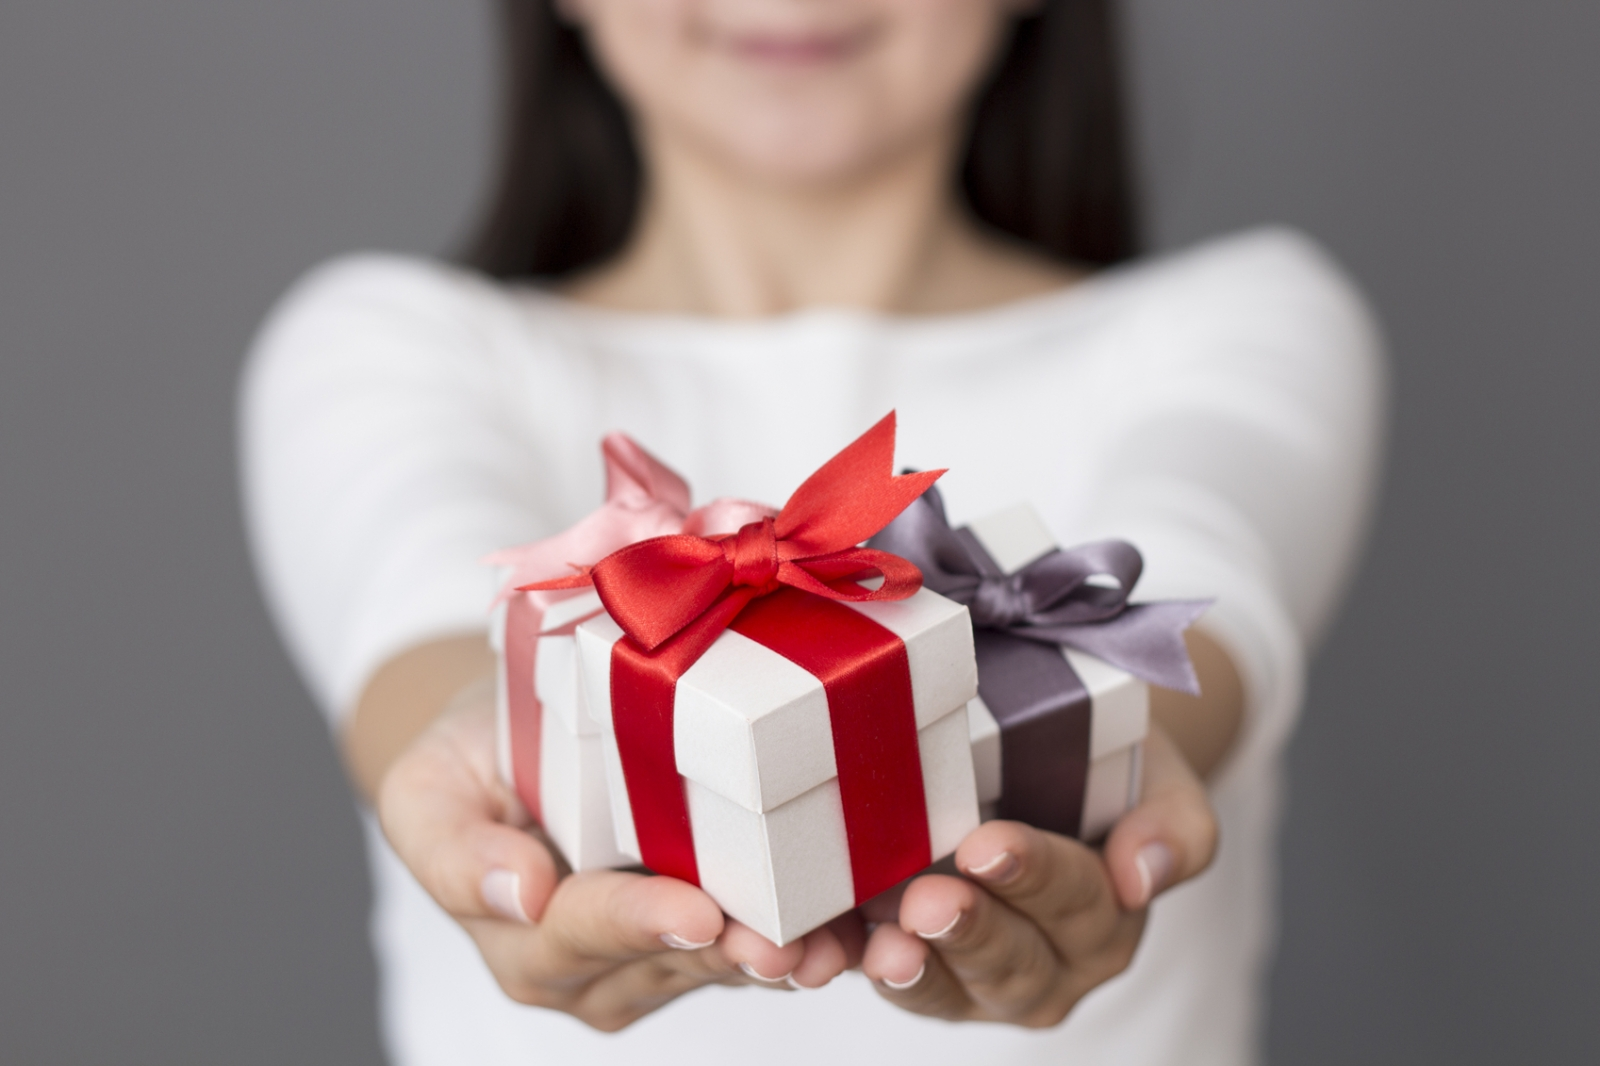 When To Send Wedding Gift: The 'warm Glow' You Get From Generosity Is A Real